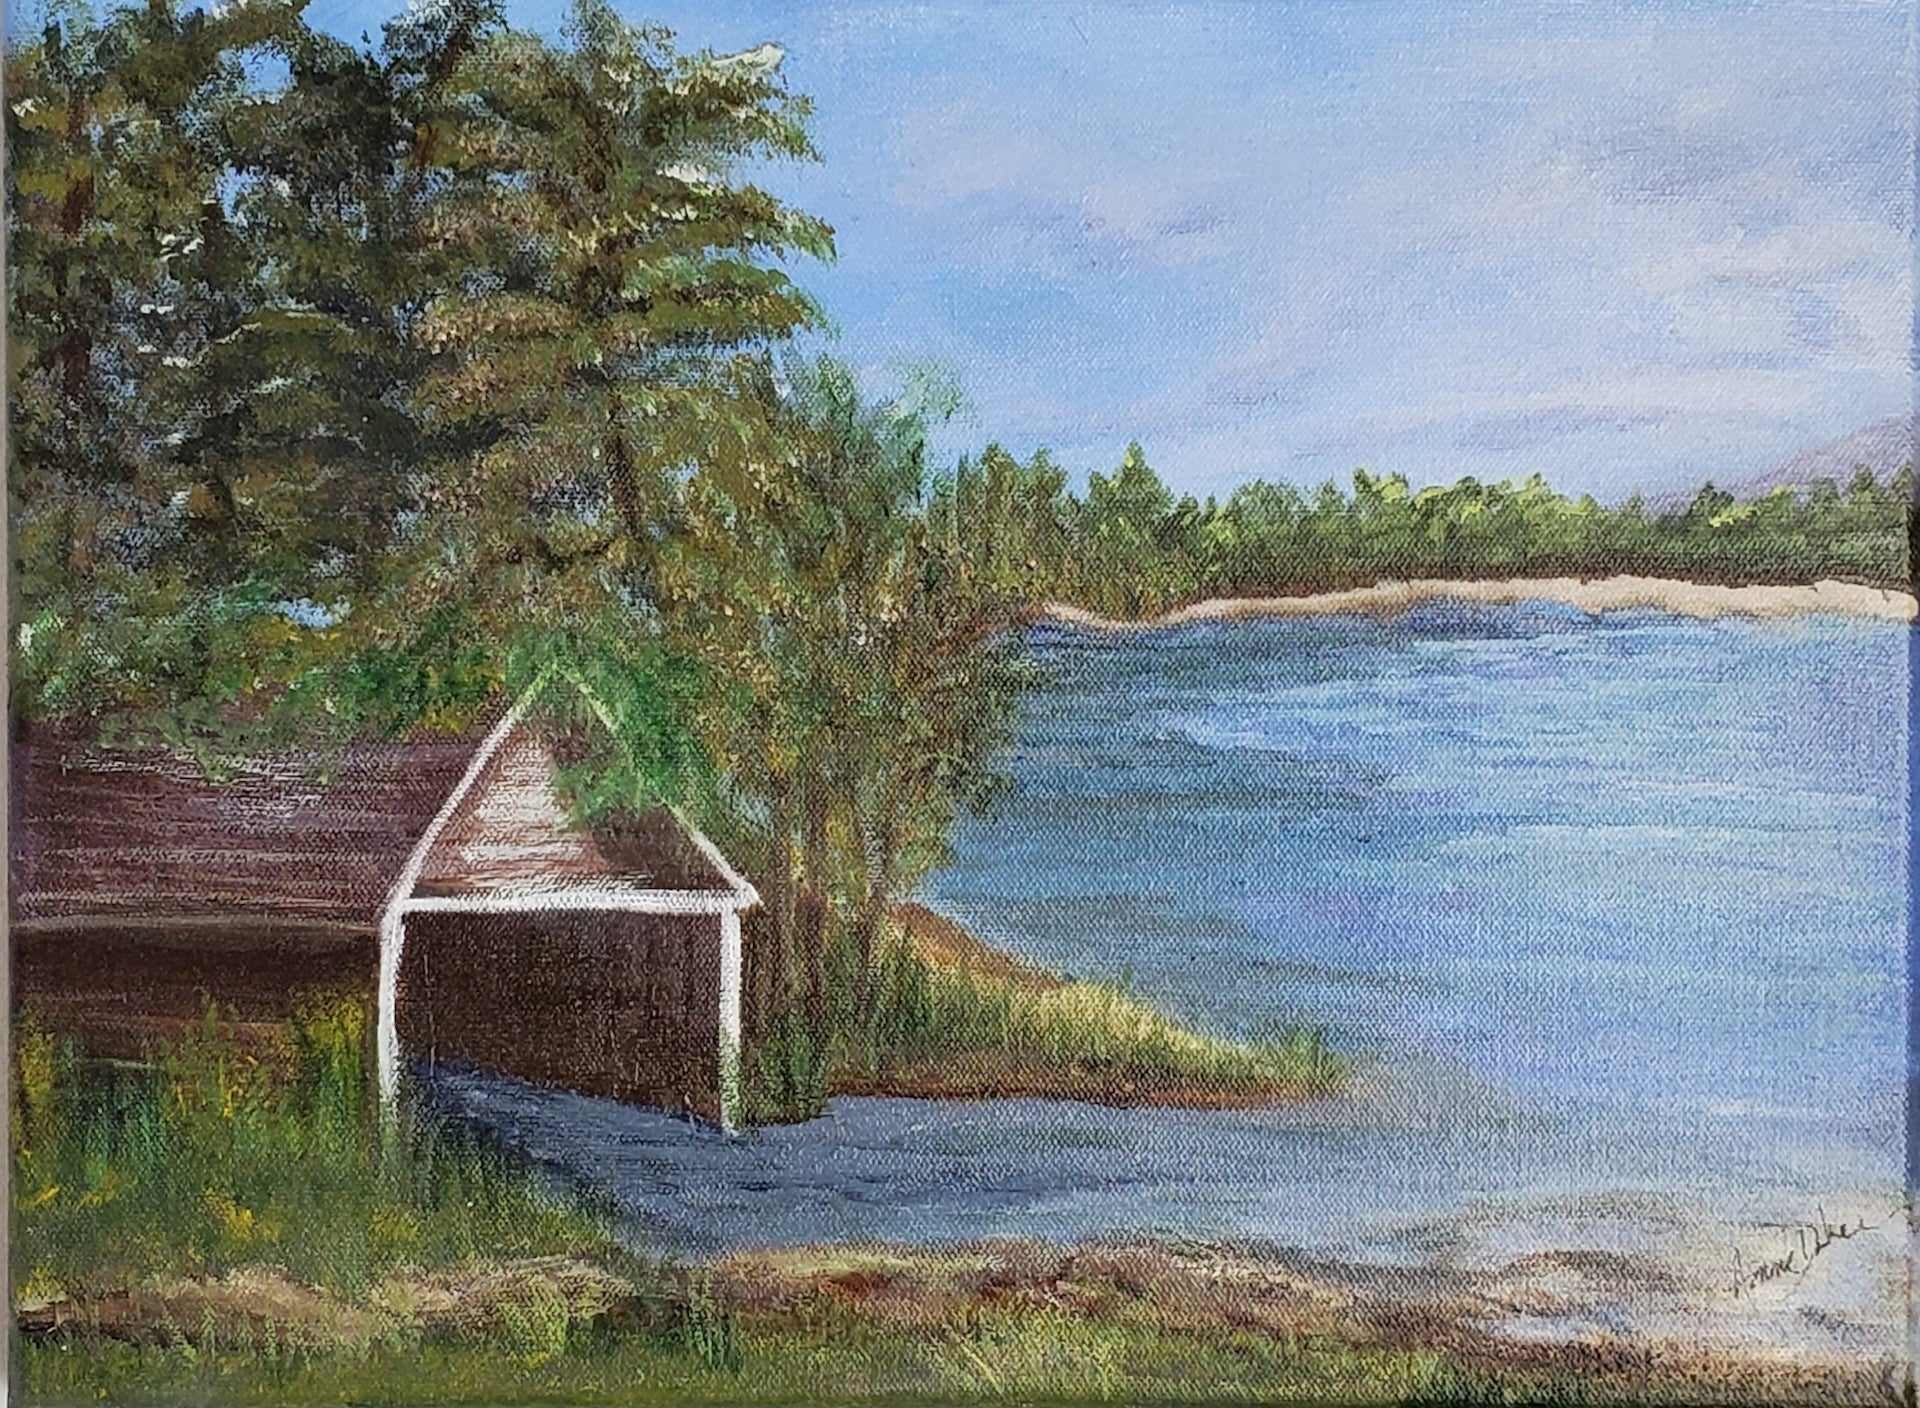 Boathouse  on Lake Leelanau, MI